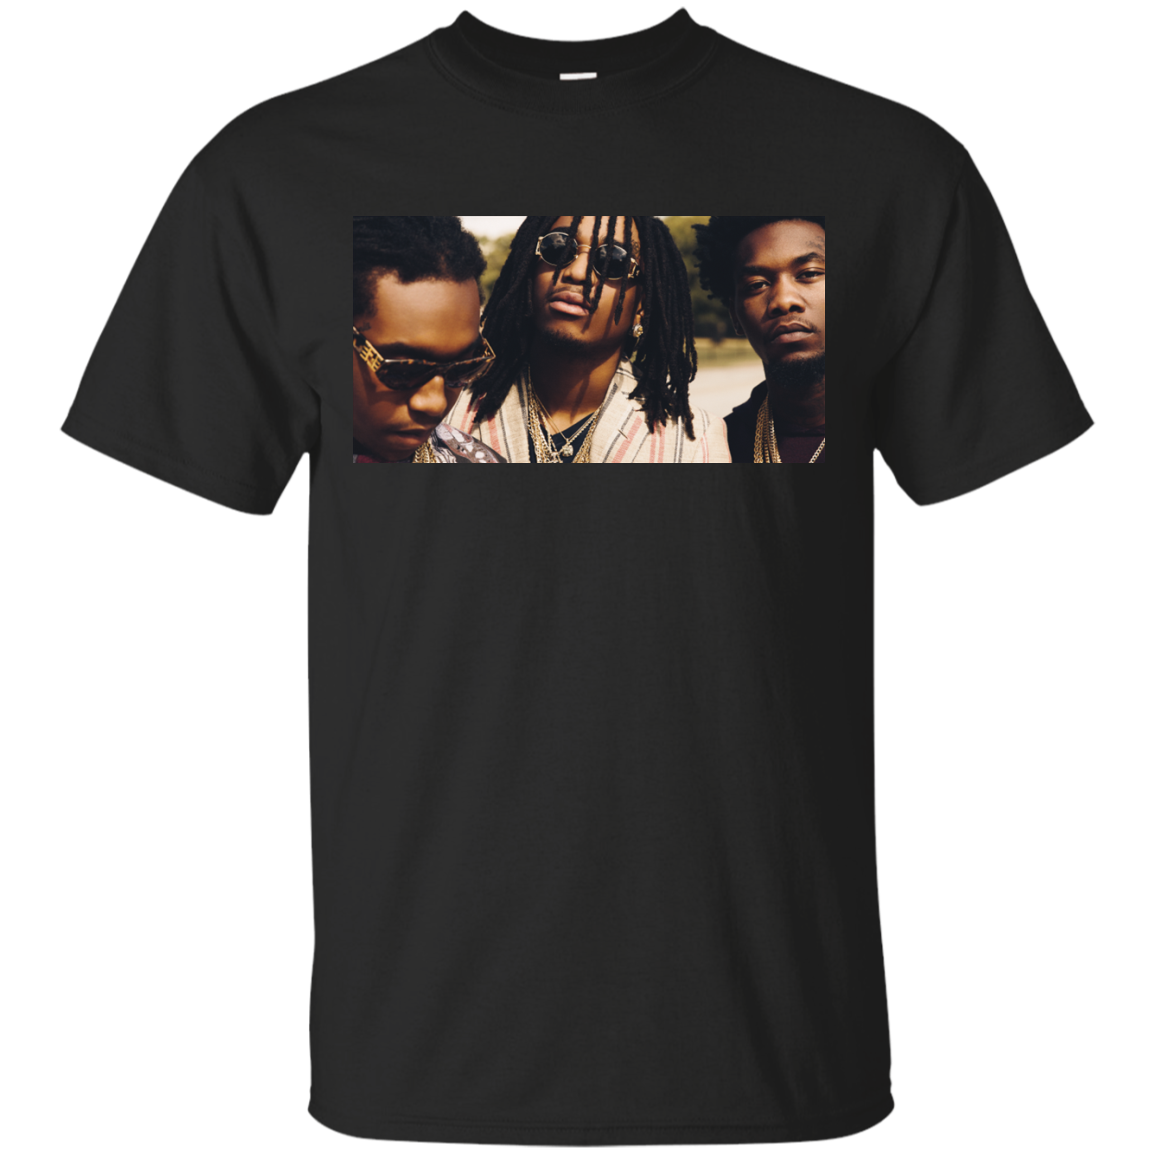 Migos T Shirt | MIGOS Cotton Unisex's T Shirt, Hoodies